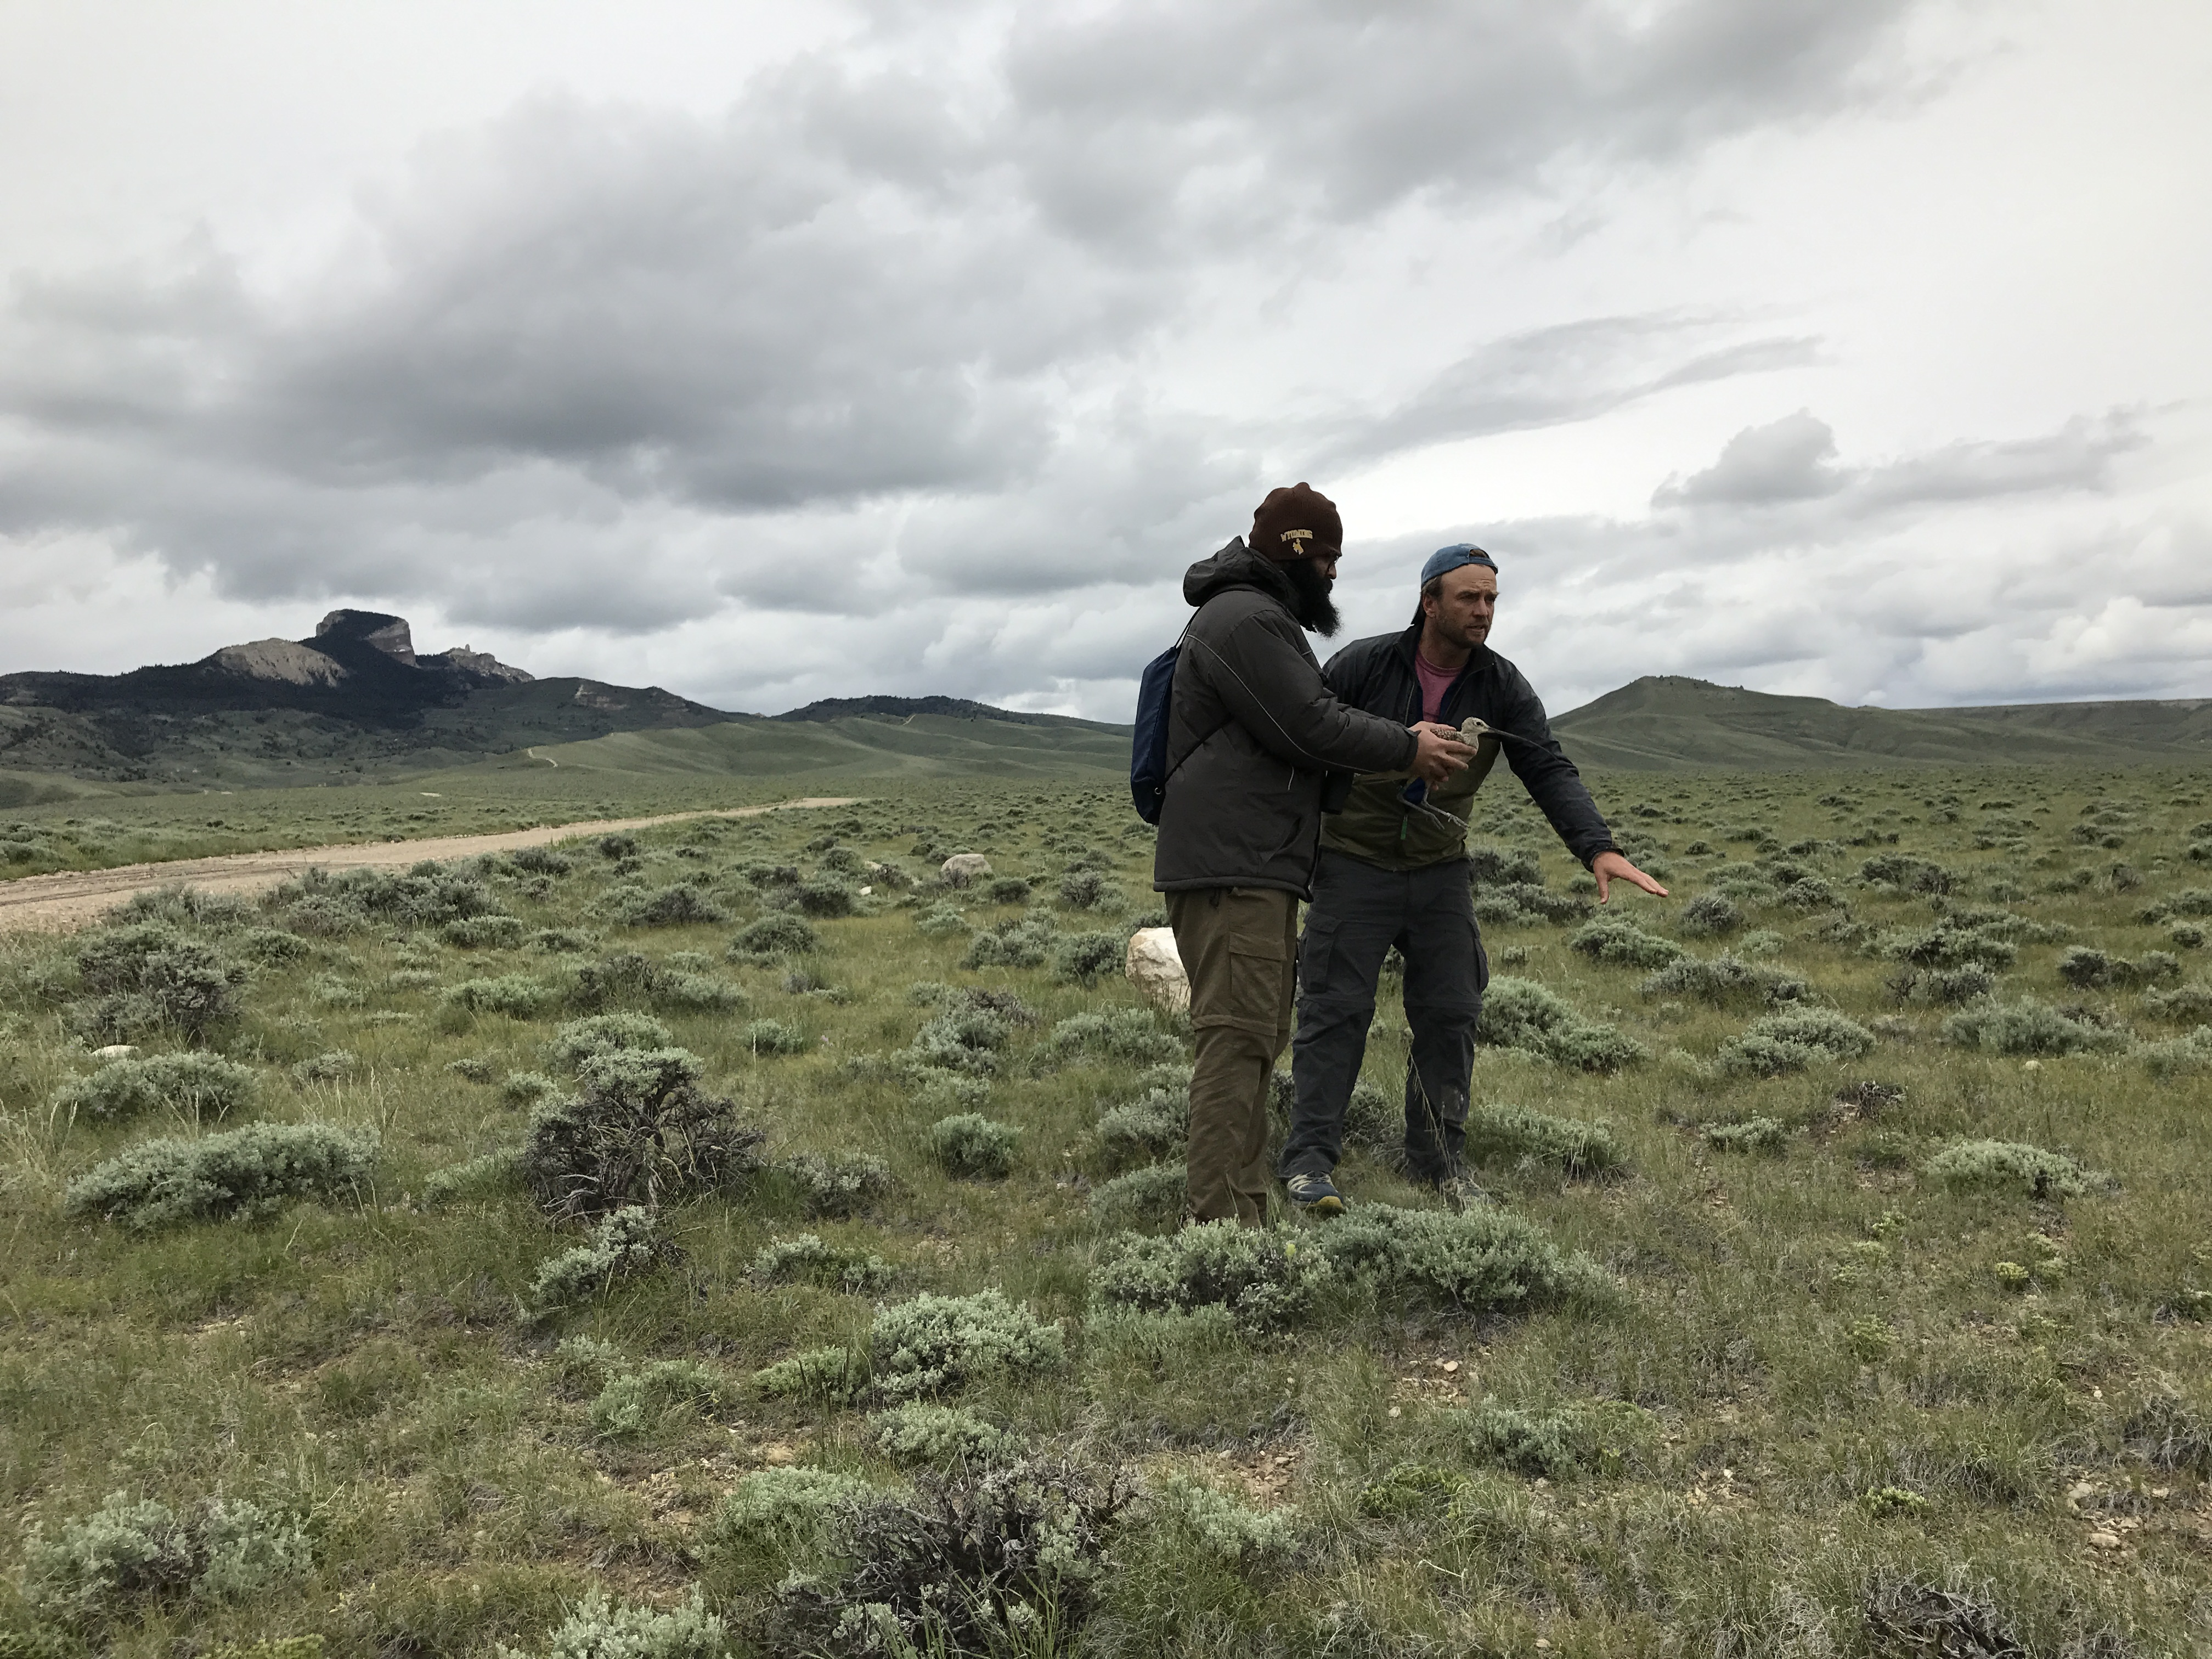 Jay works with Fernando (a Brazilian PhD student at U of WY) to release JT, with scenic Heart Mountain in the background.